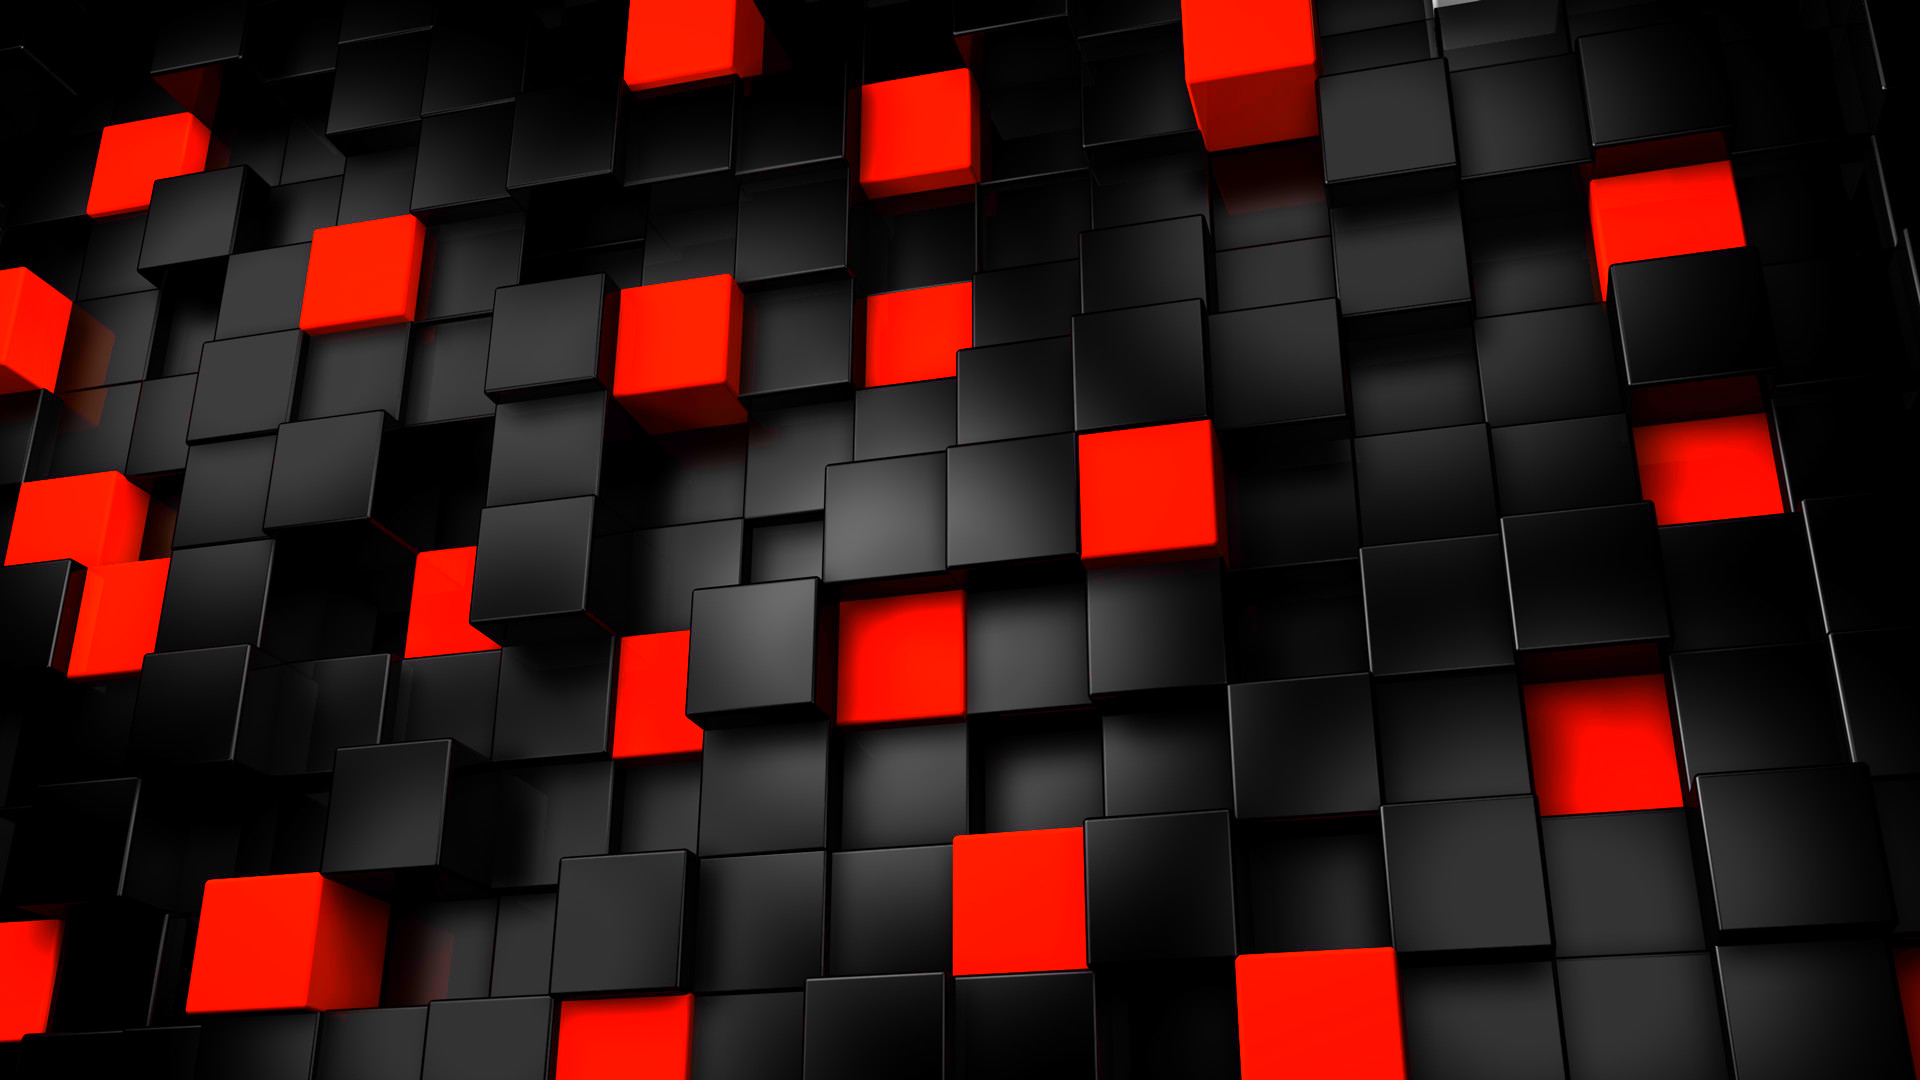 Abstract Black And Red Cubes   Wallpapers, Free Cool Deskop Wallpapers Wallpaper